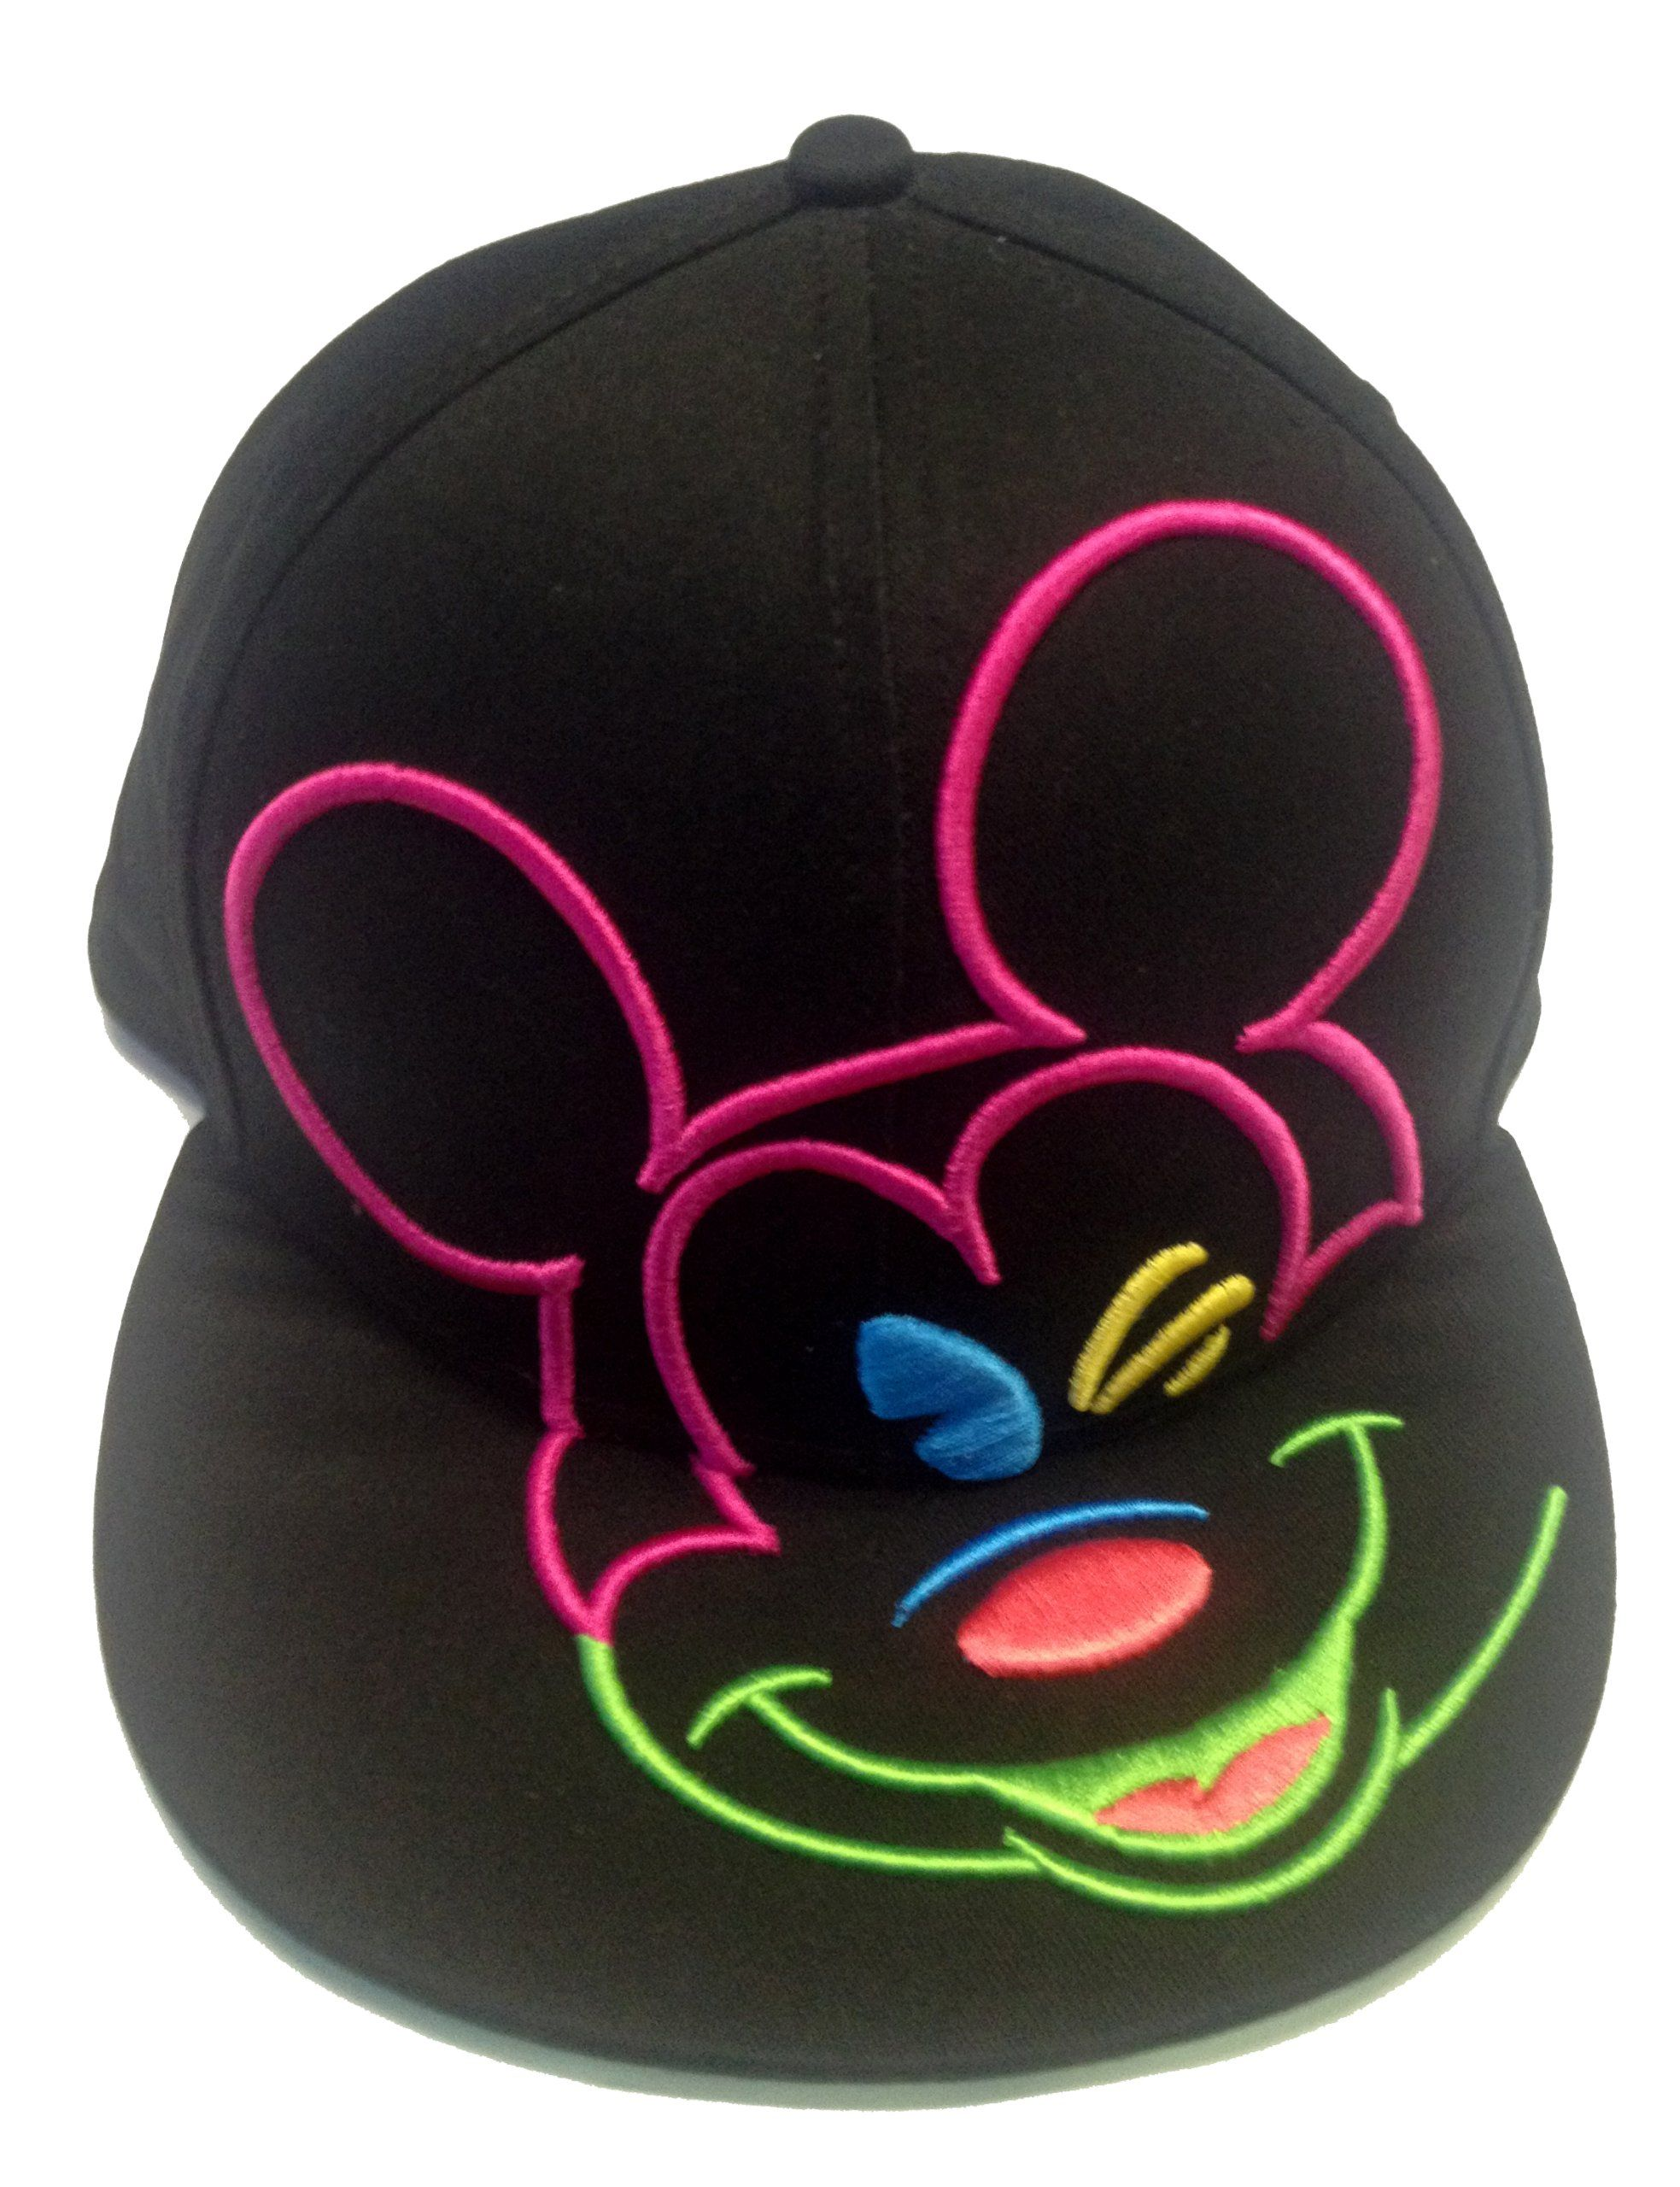 849c30b9496 Disney Mickey Mouse Black Neon Colors Outlined Snapback Hat Cap Flat Bill